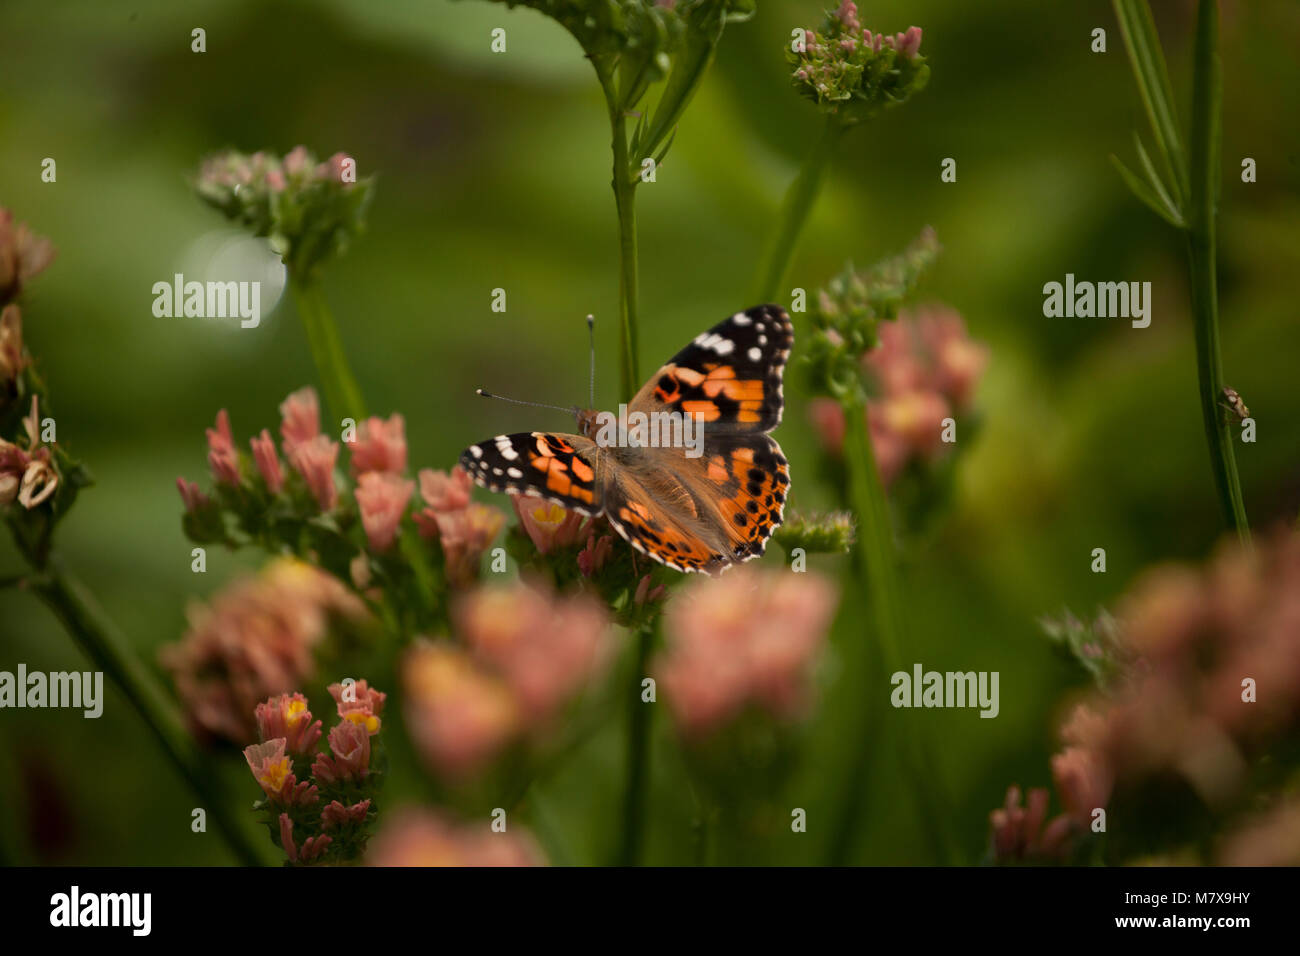 Monarch butterfly sitting on plant in English country garden - Stock Image